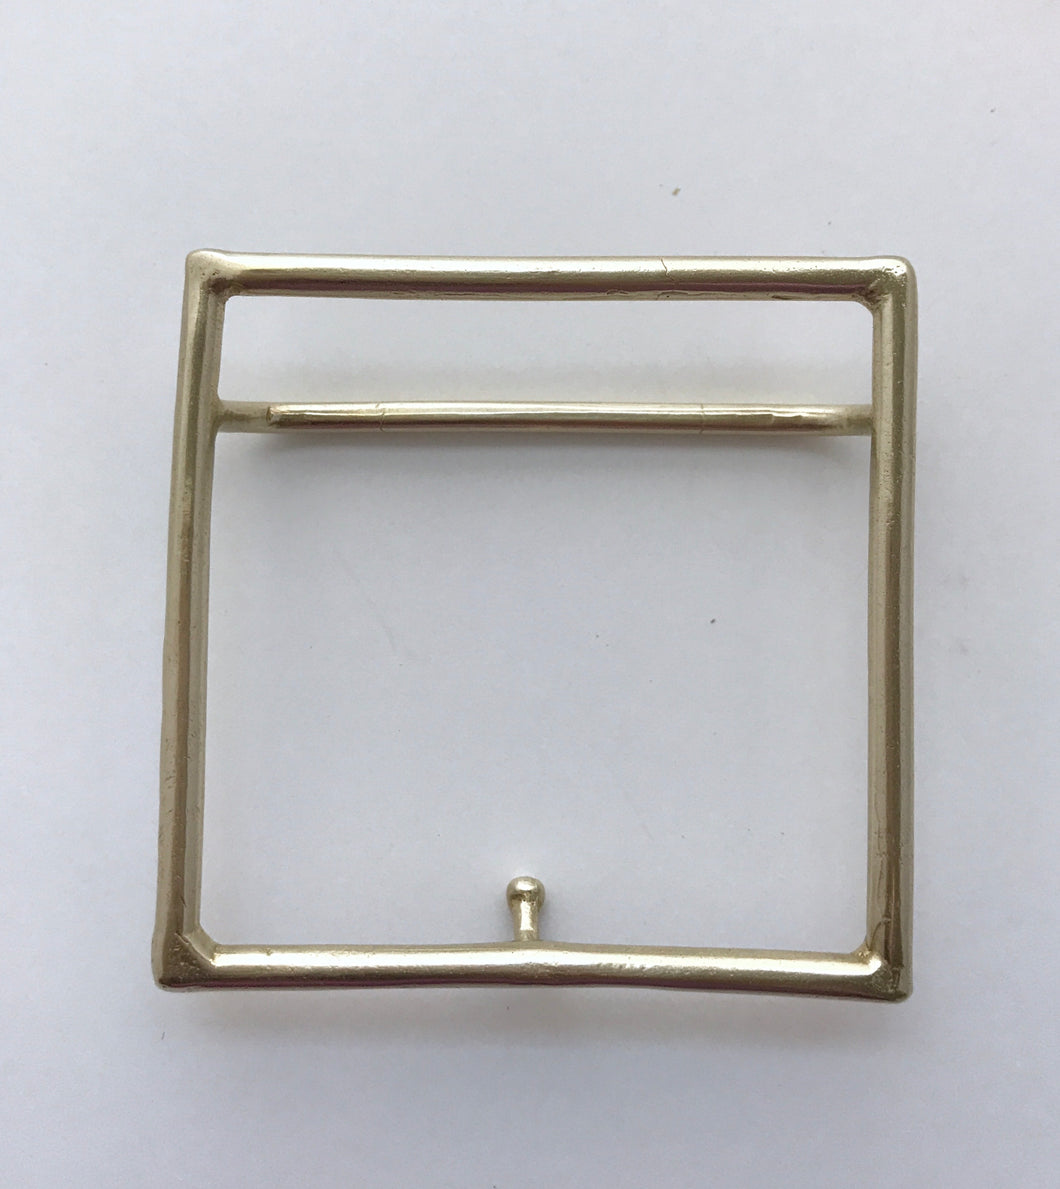 Architect Buckle